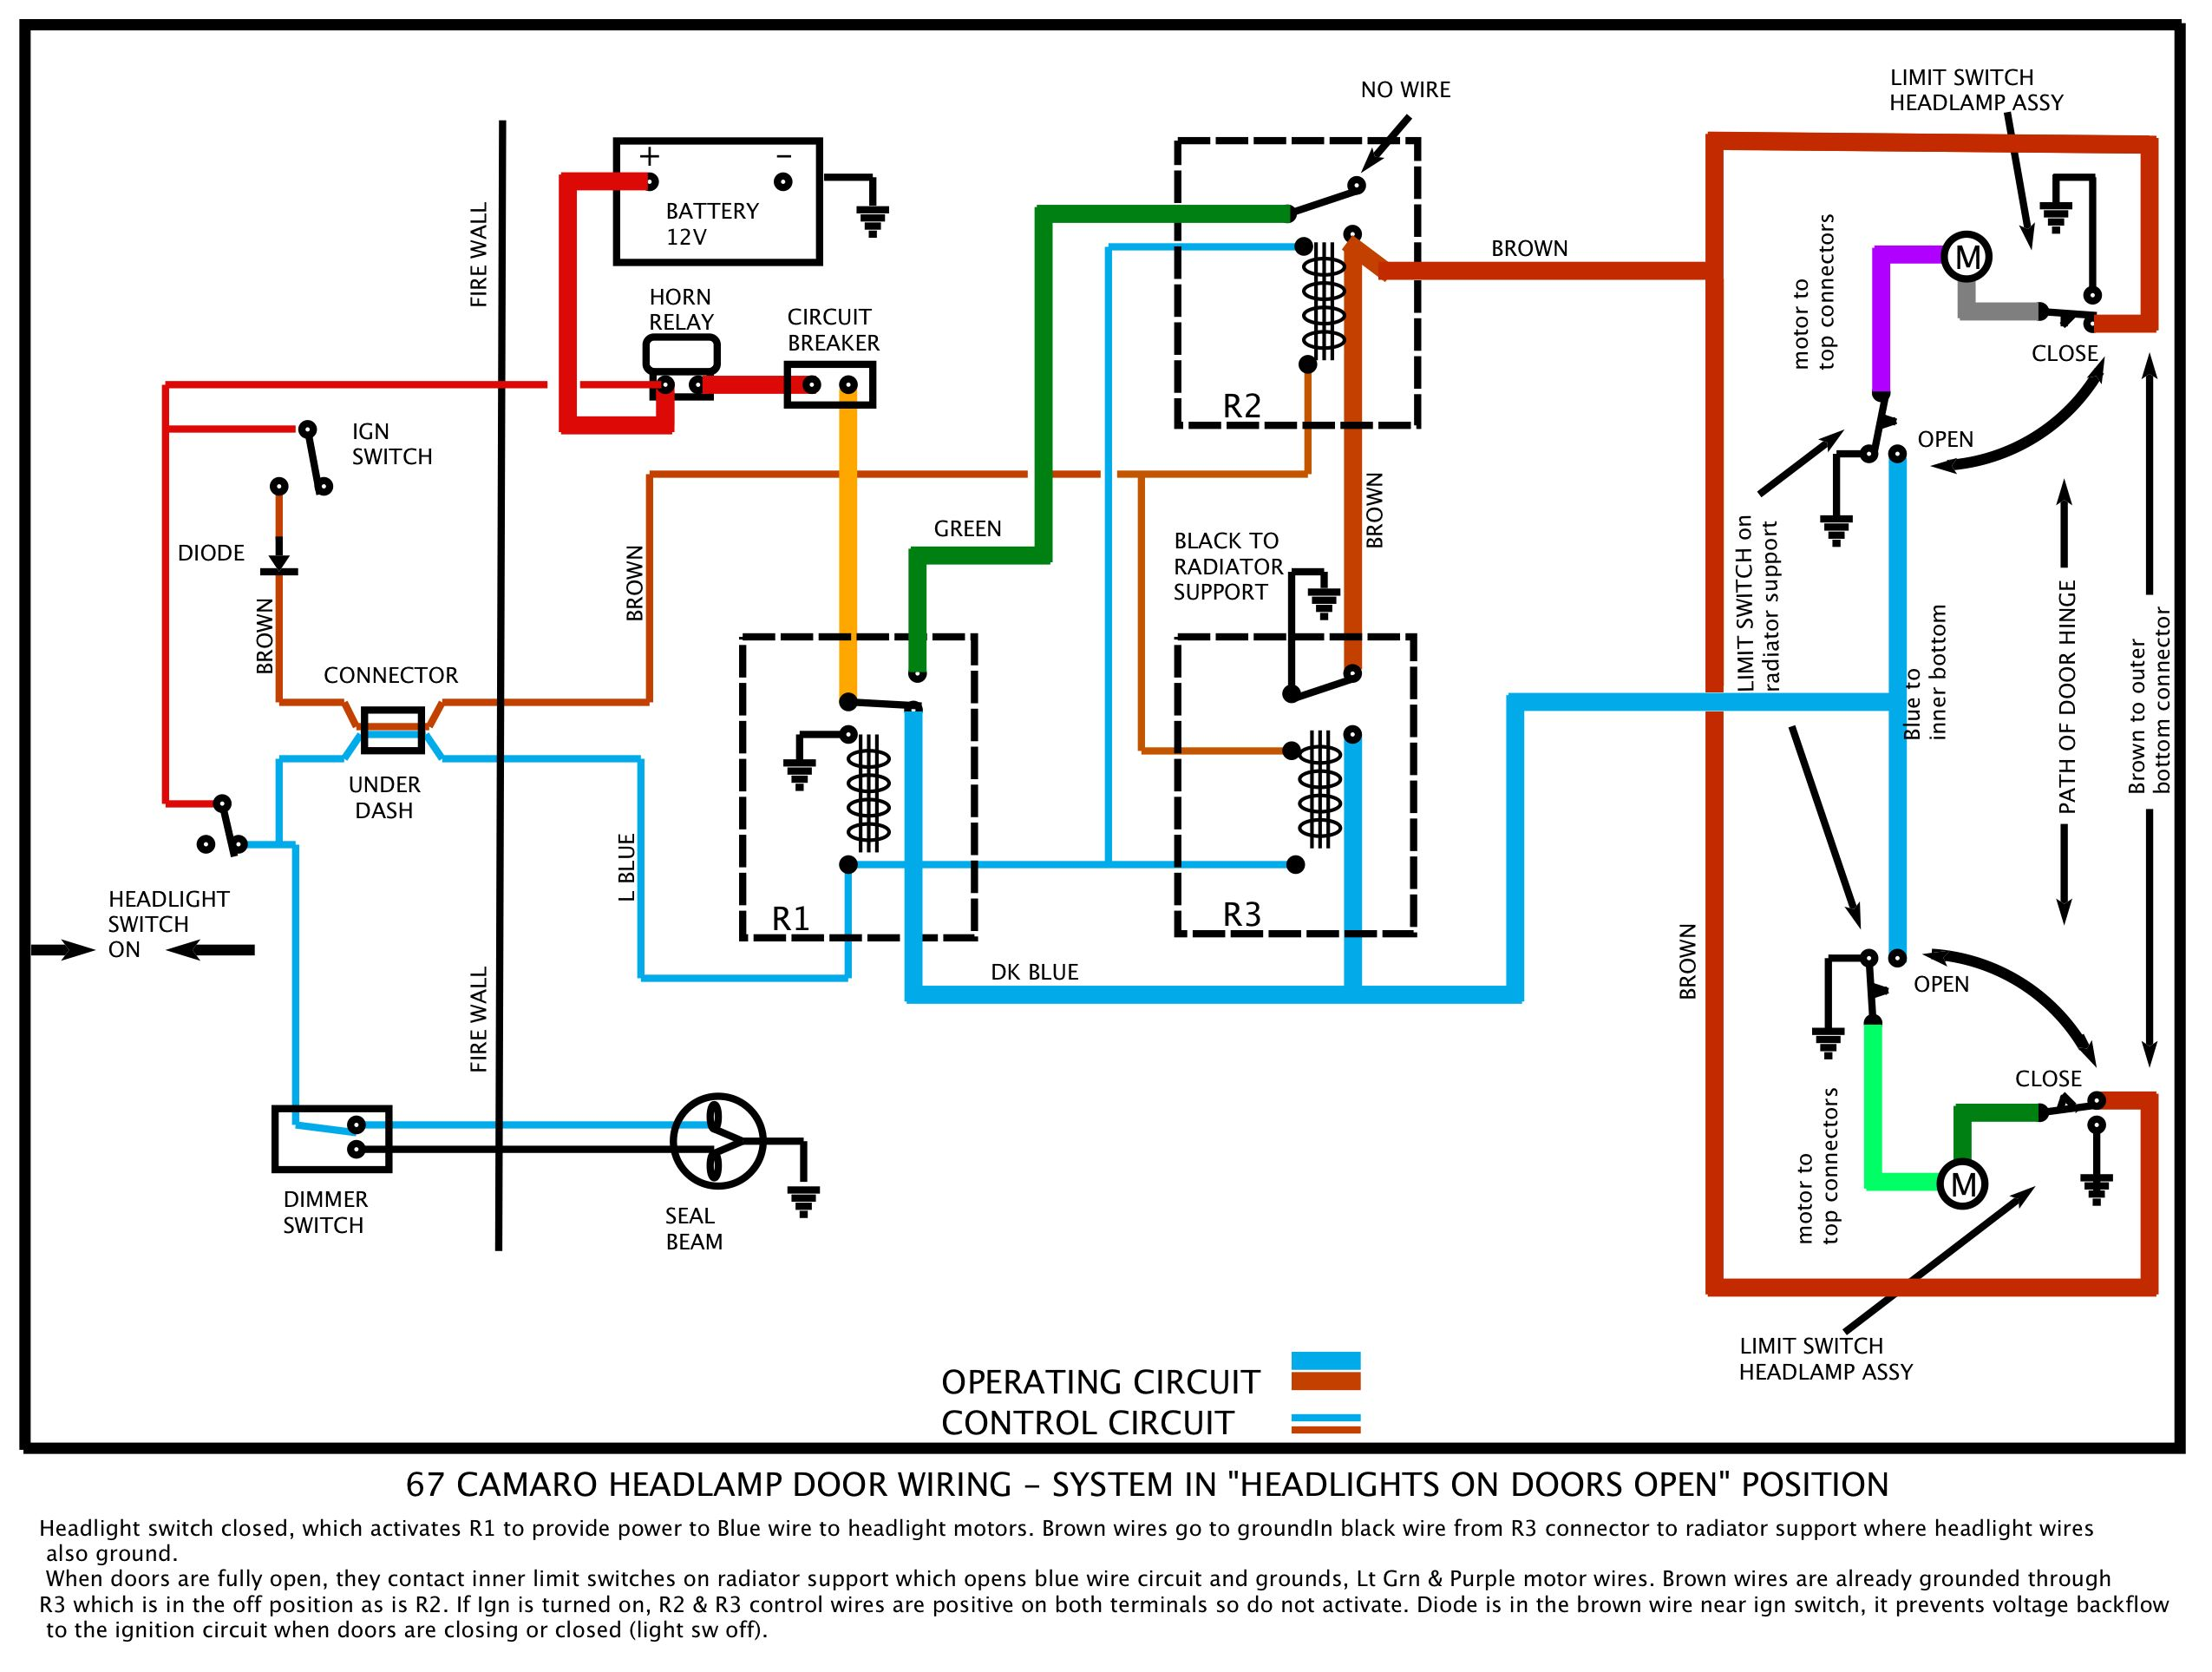 67 camaro ignition wiring data wiring diagram update67 camaro wiring diagram data wiring diagram update 67 camaro 327 mallory ignition wiring 67 camaro ignition wiring